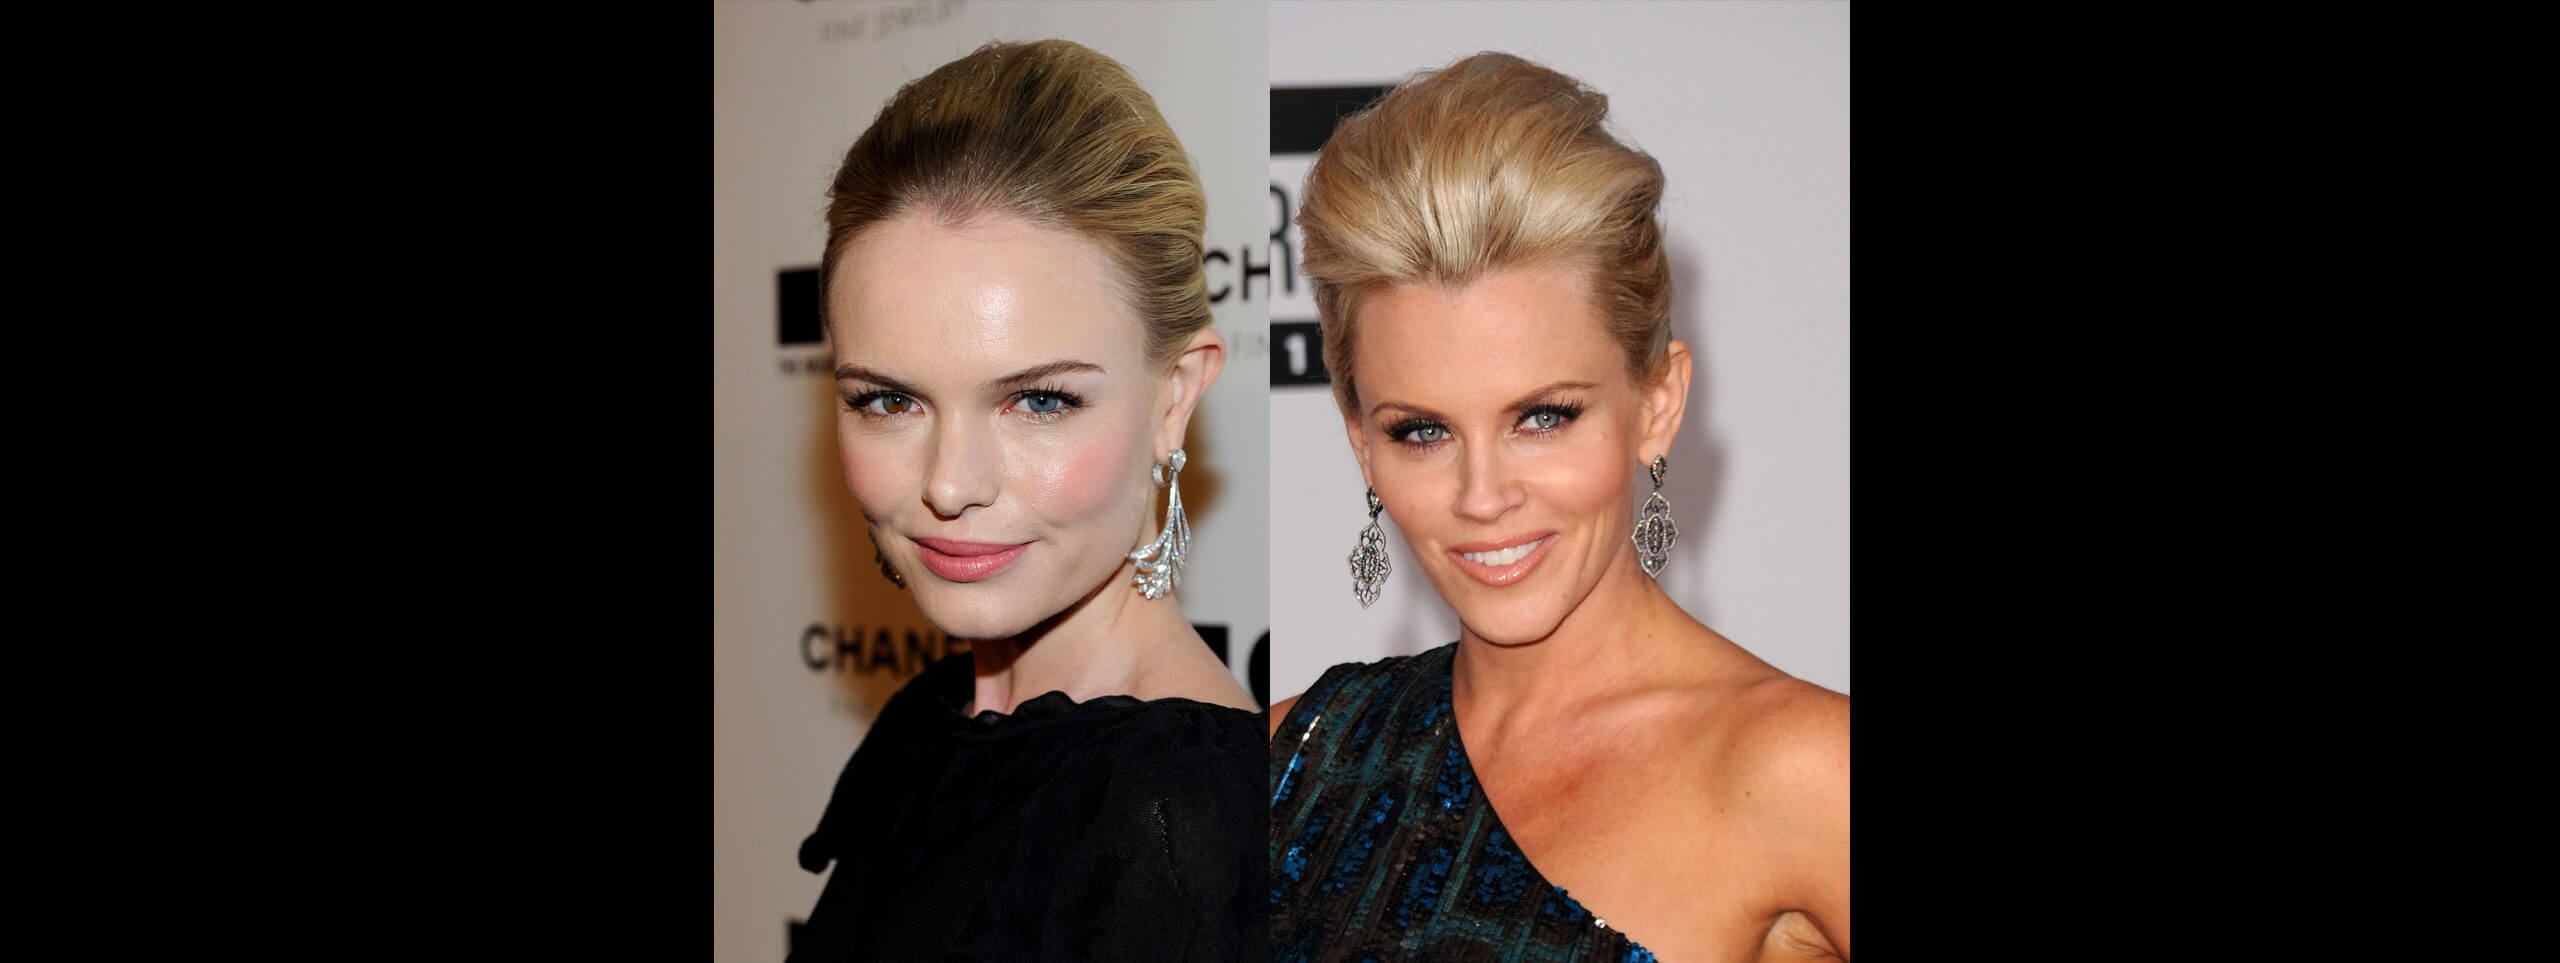 hairstyles-voting-jenny-mccarthy-kate-bosworth